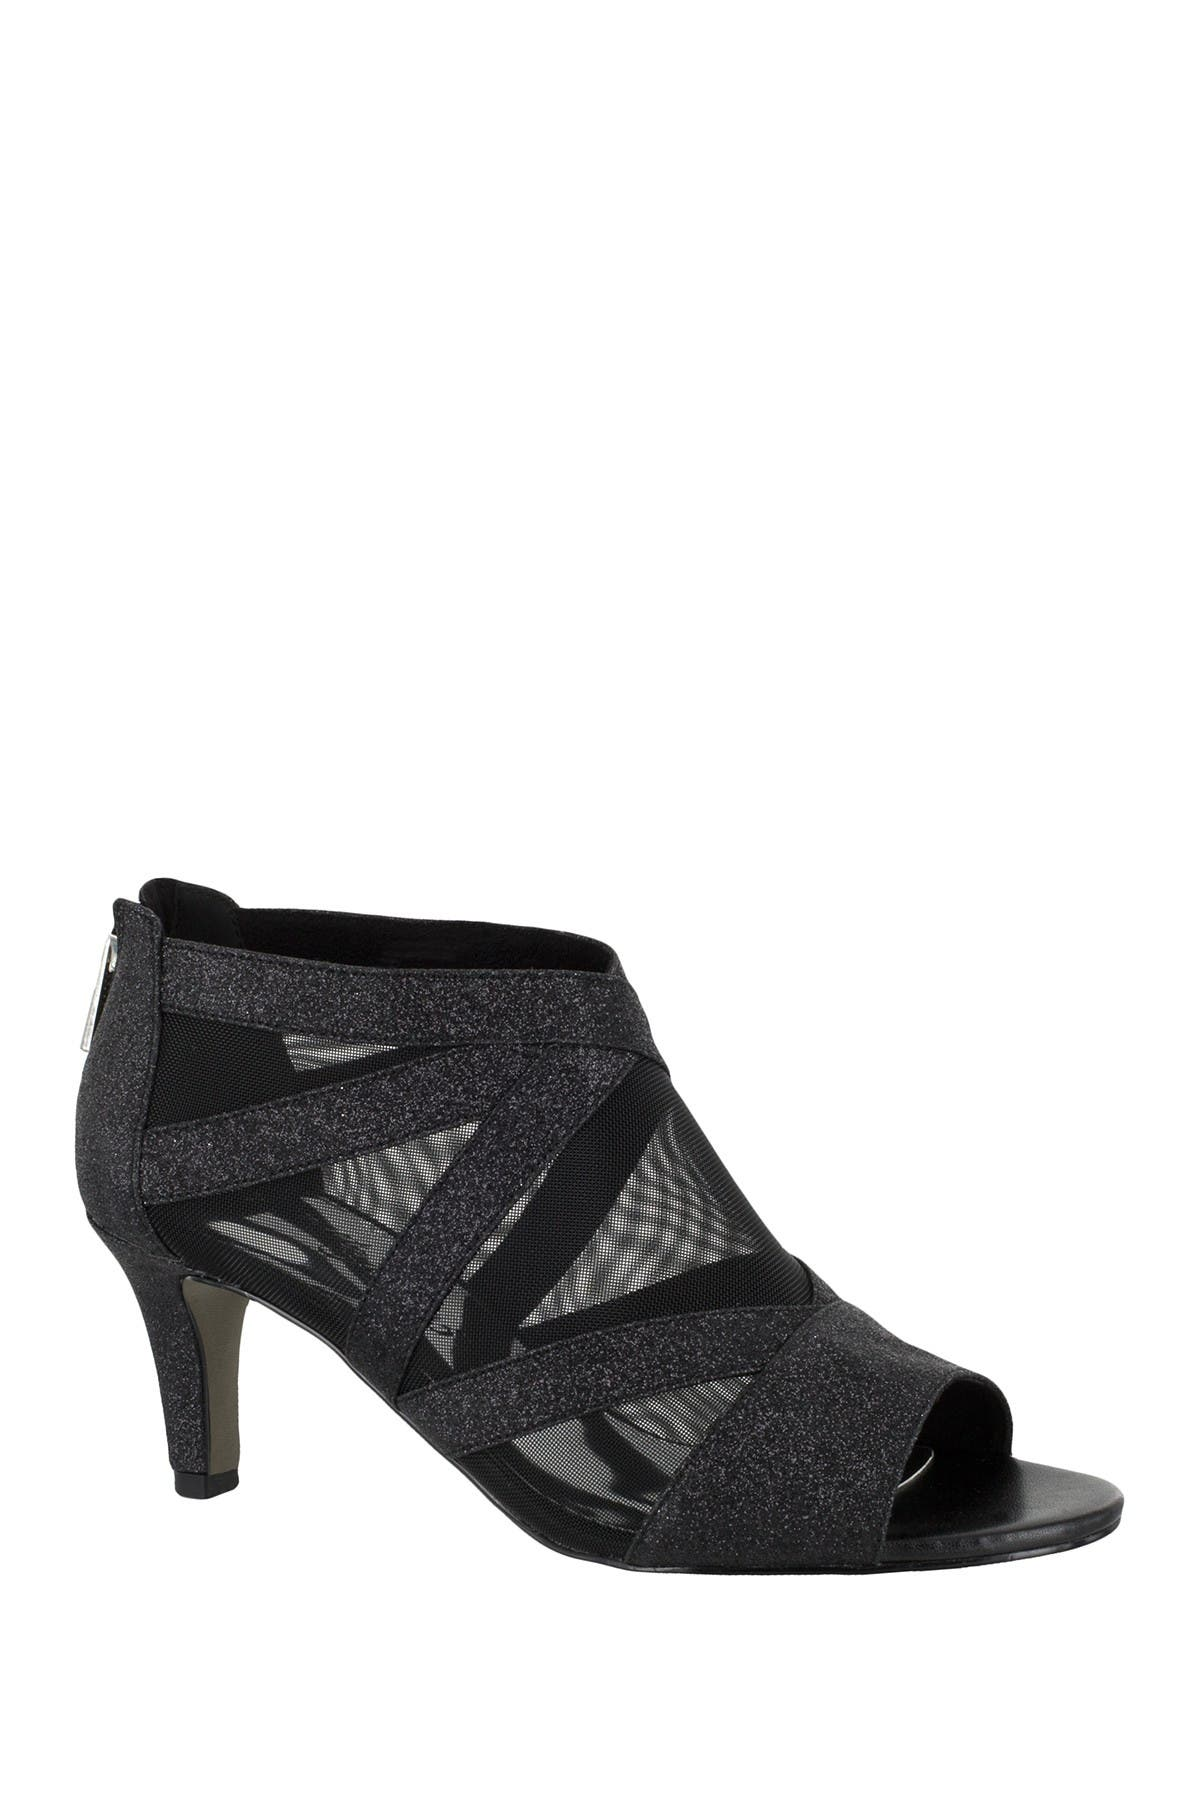 Image of EASY STREET Dazzle Stiletto Pump - Multiple Widths Available